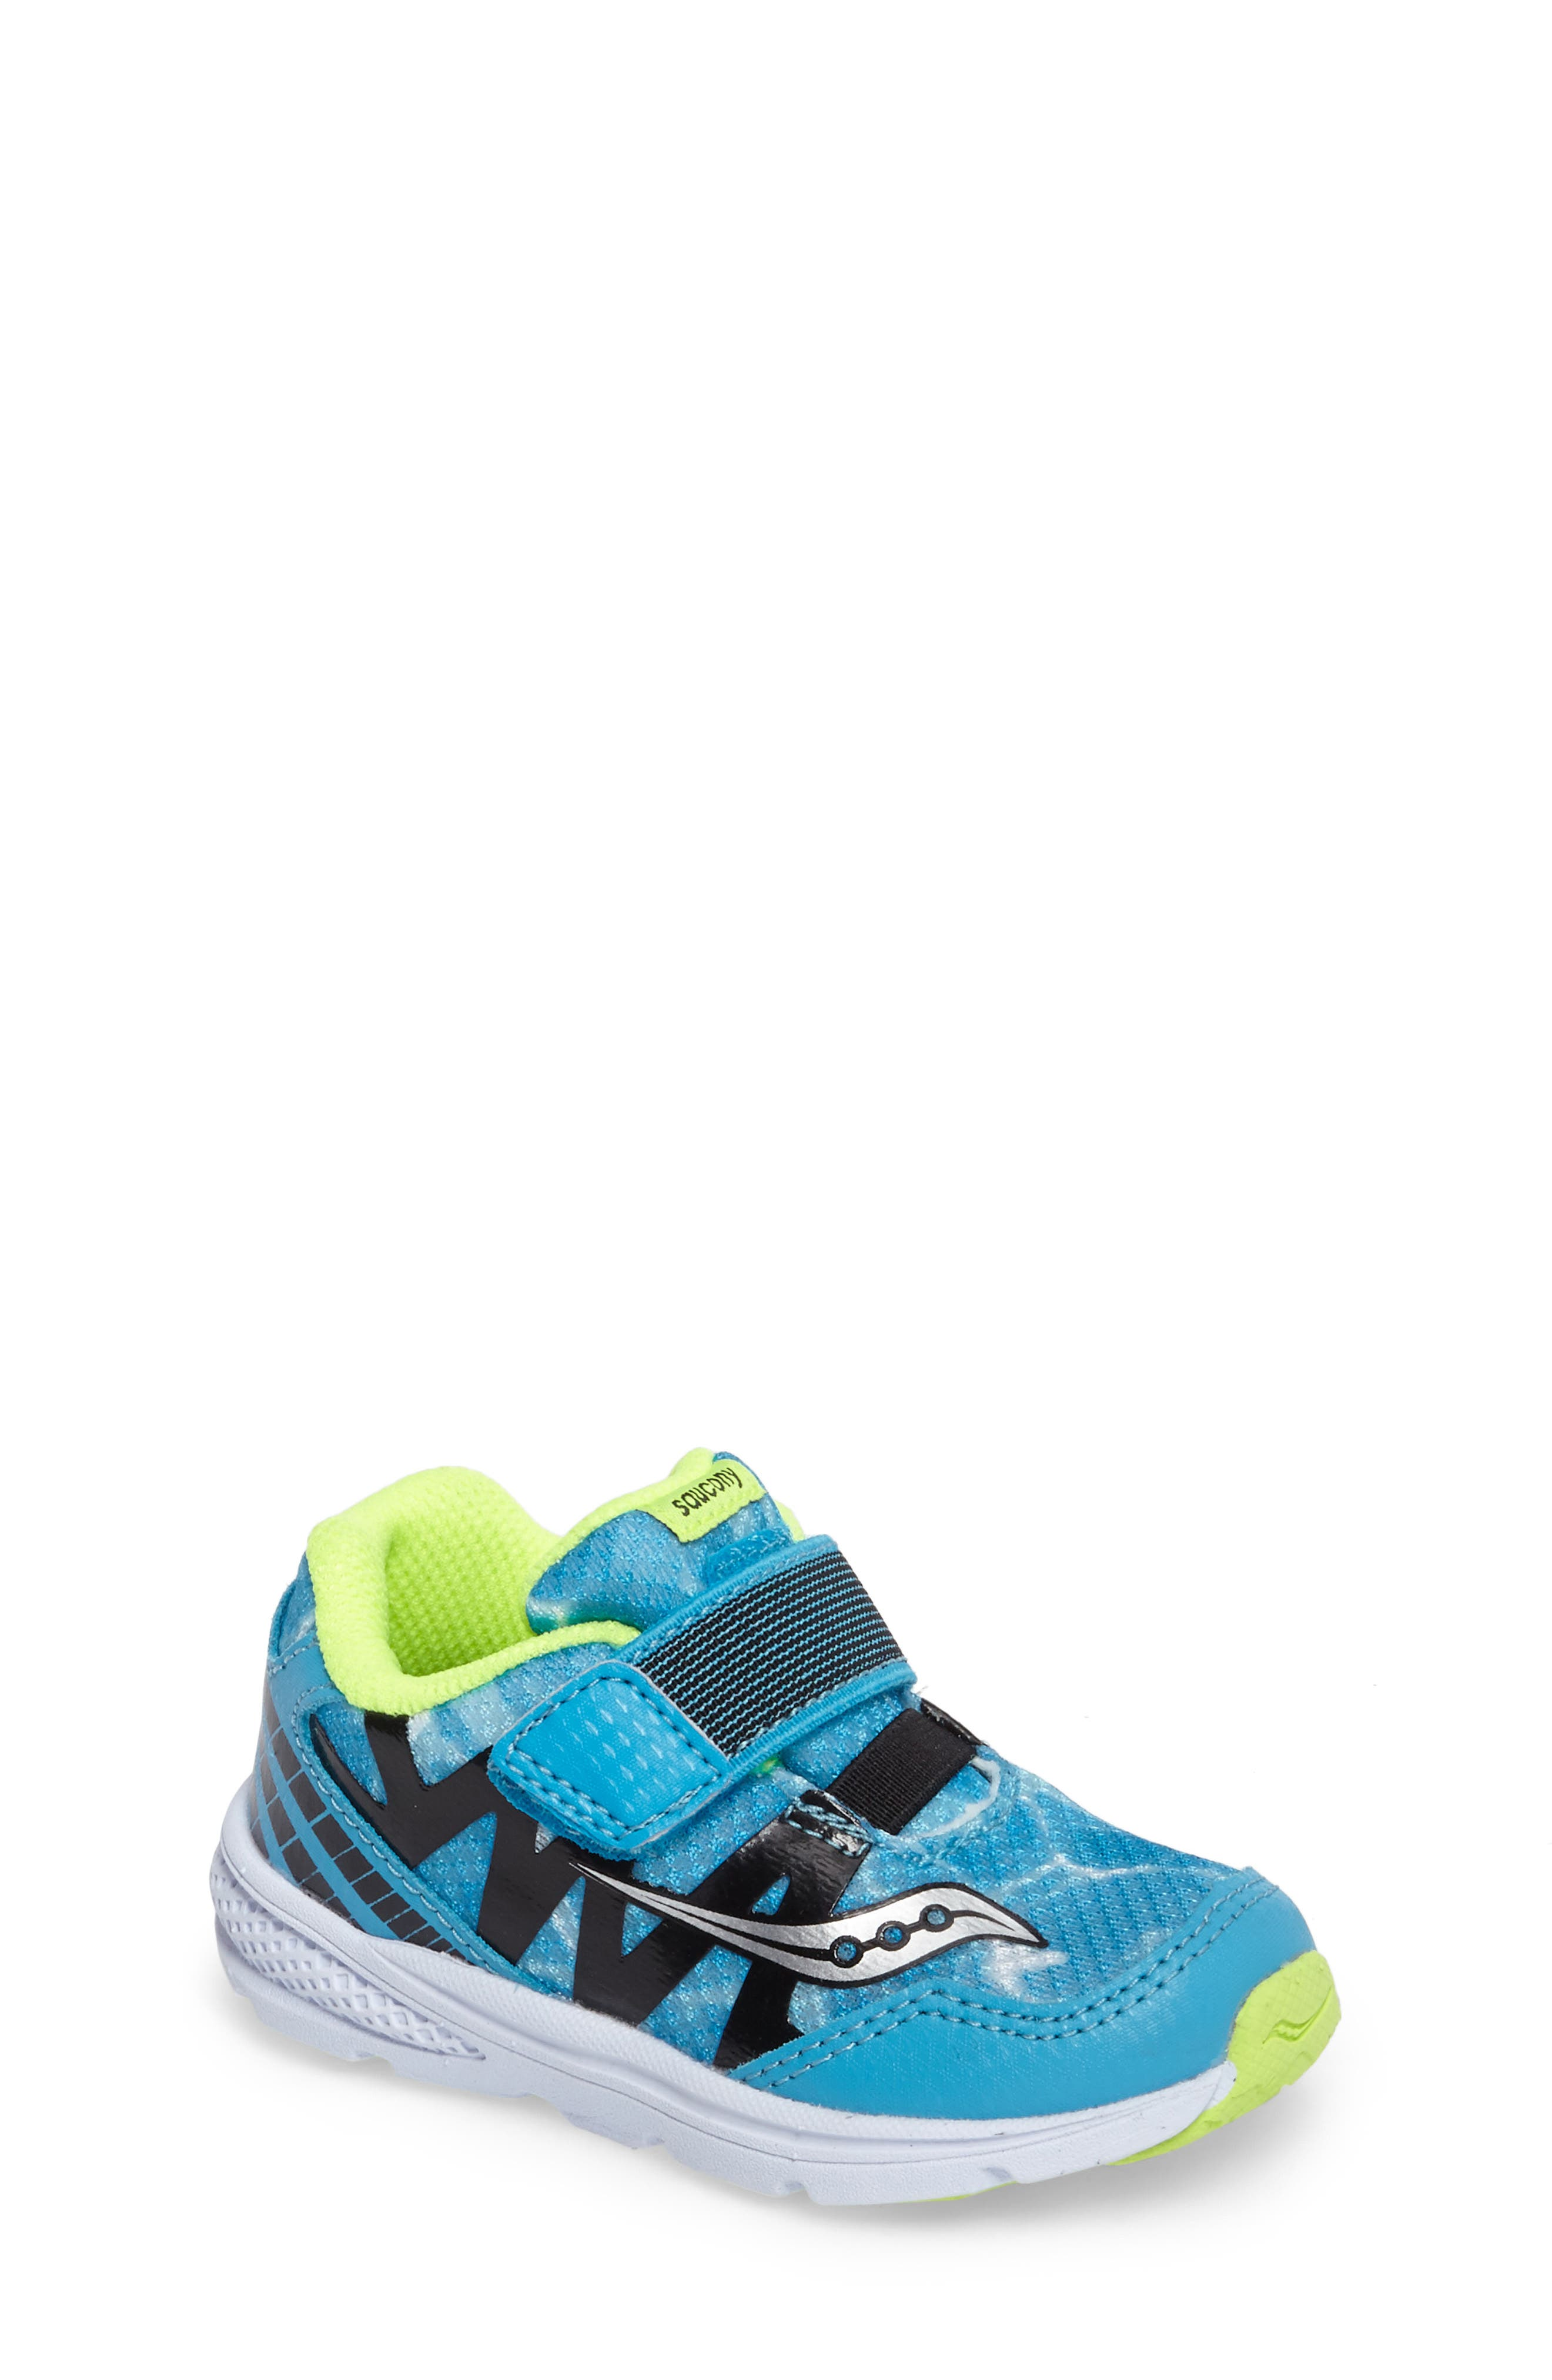 Baby Ride Pro Sneaker,                             Main thumbnail 1, color,                             Ocean Wave